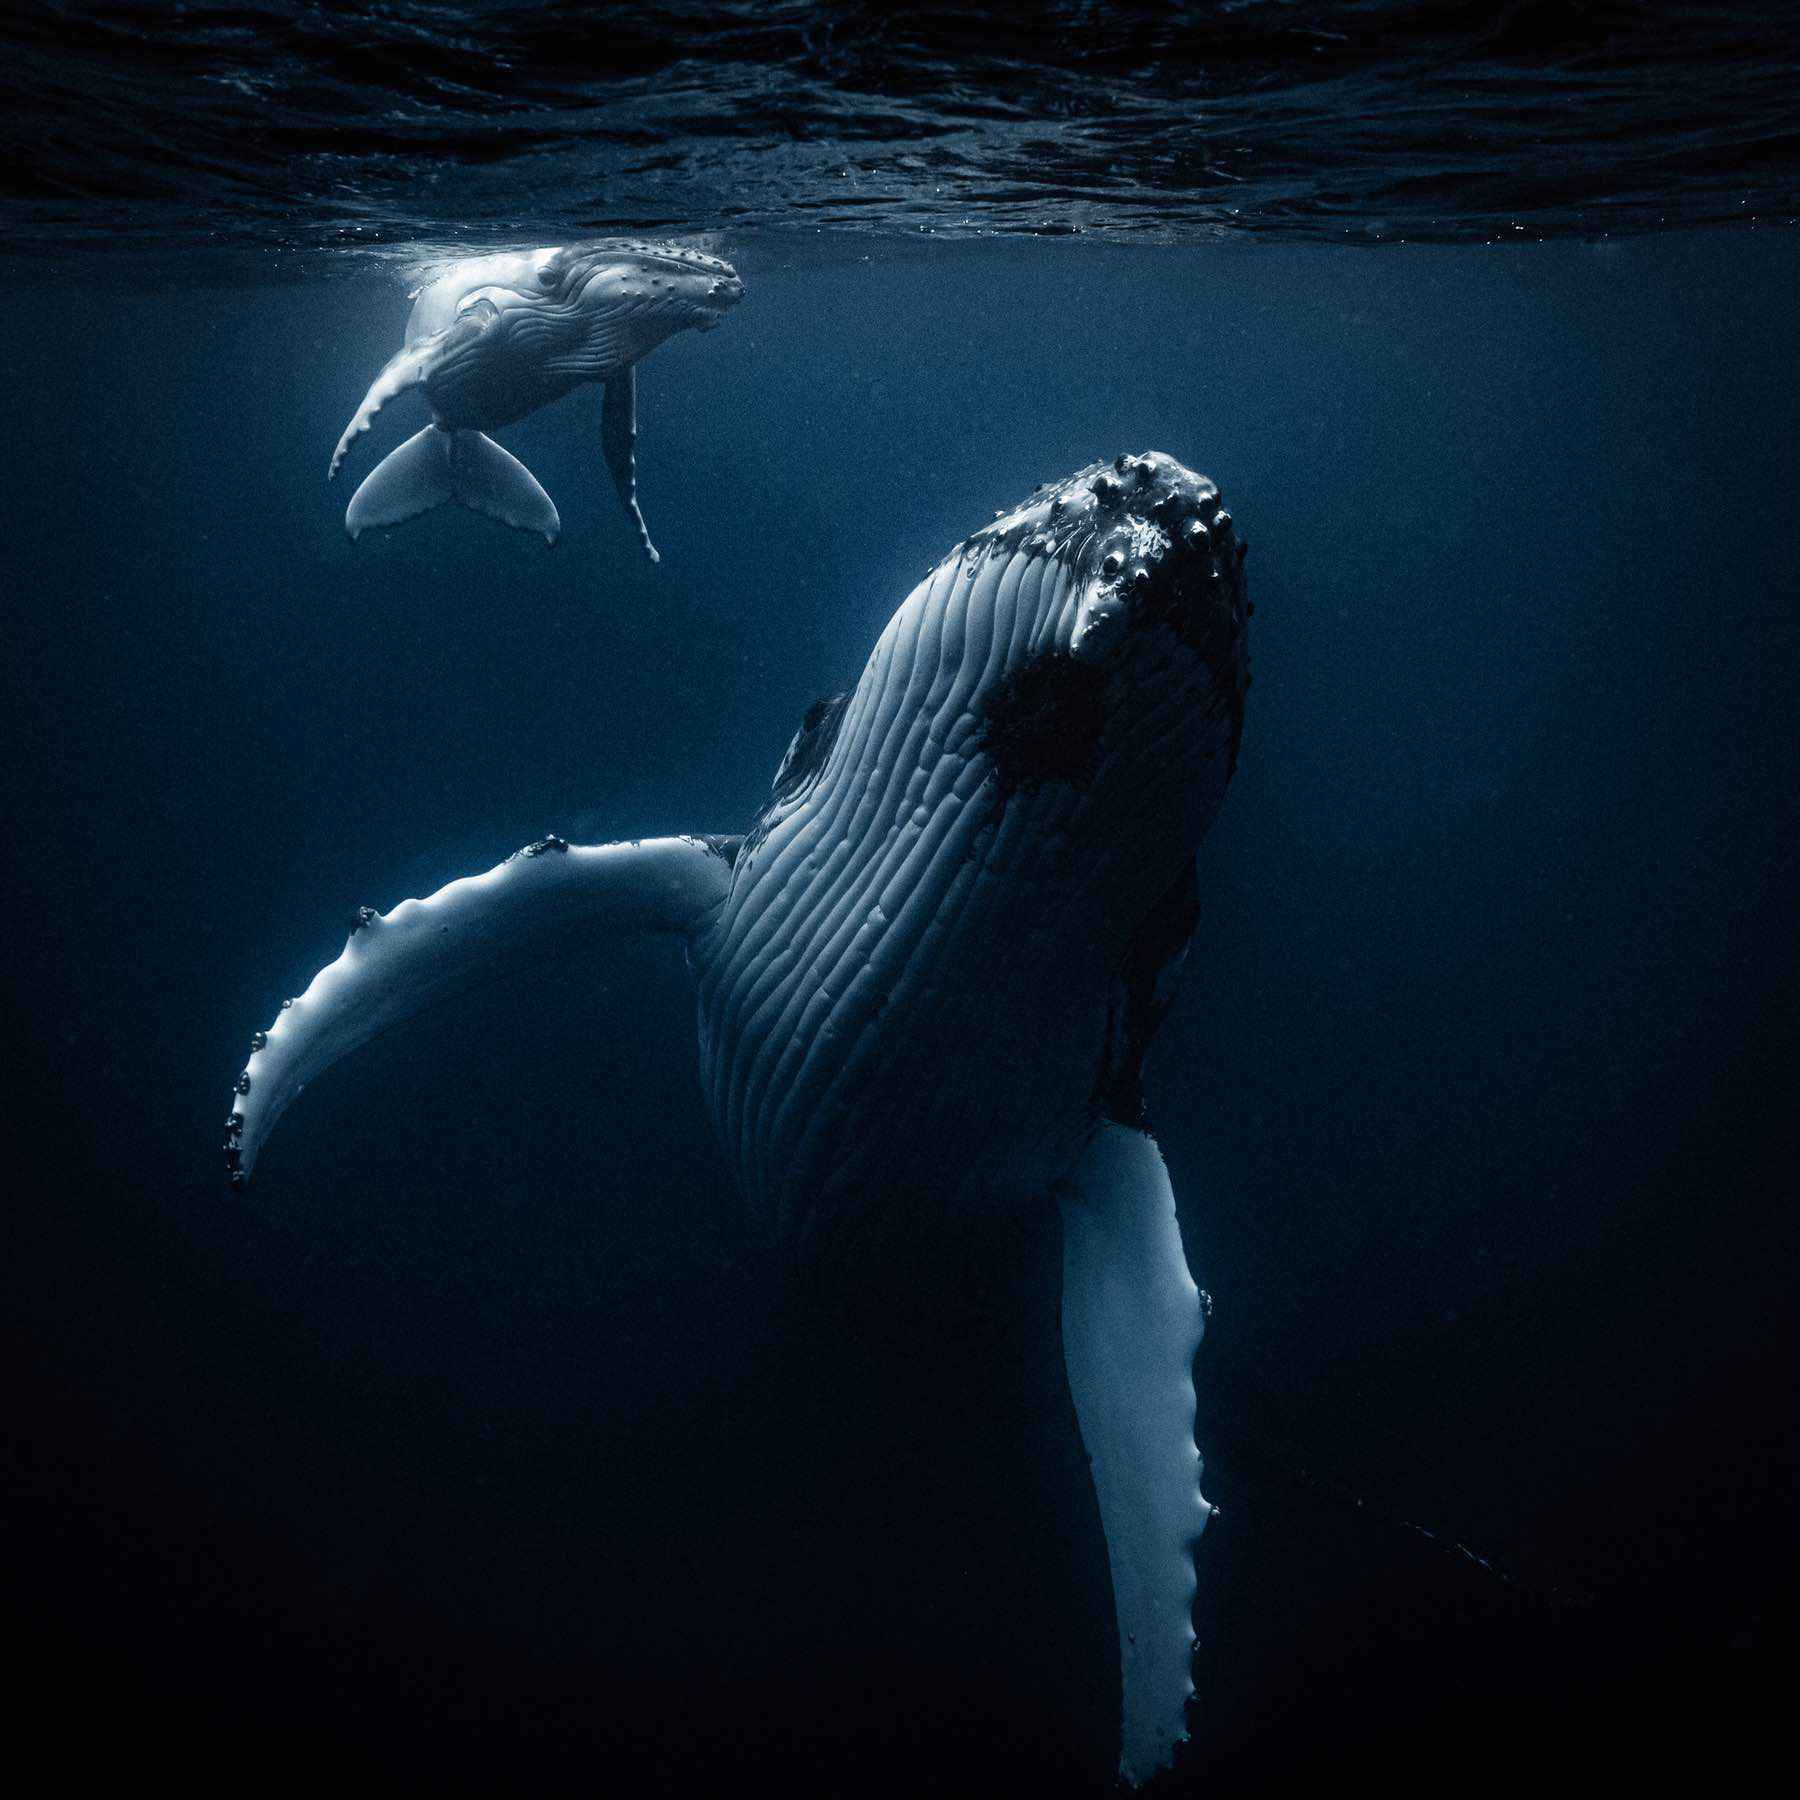 looking-for-whales-wade-robyn-hughes04